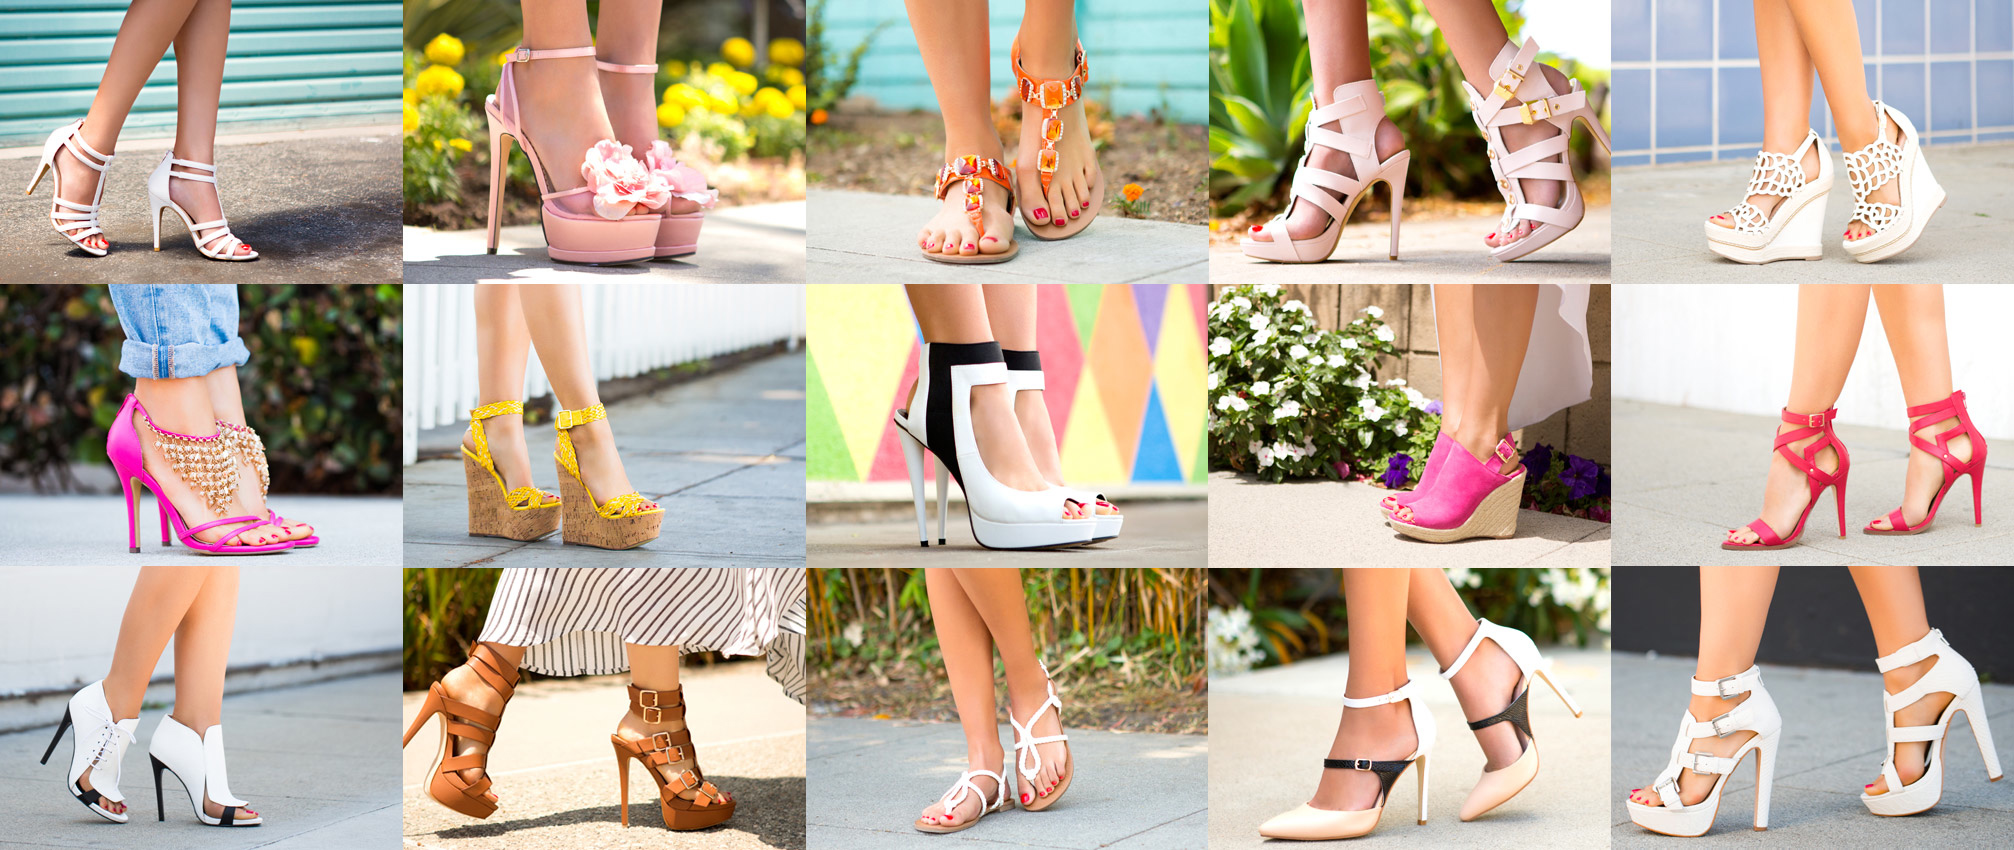 Take 50% Off and Get Free Shipping Now at ShoeDazzle!